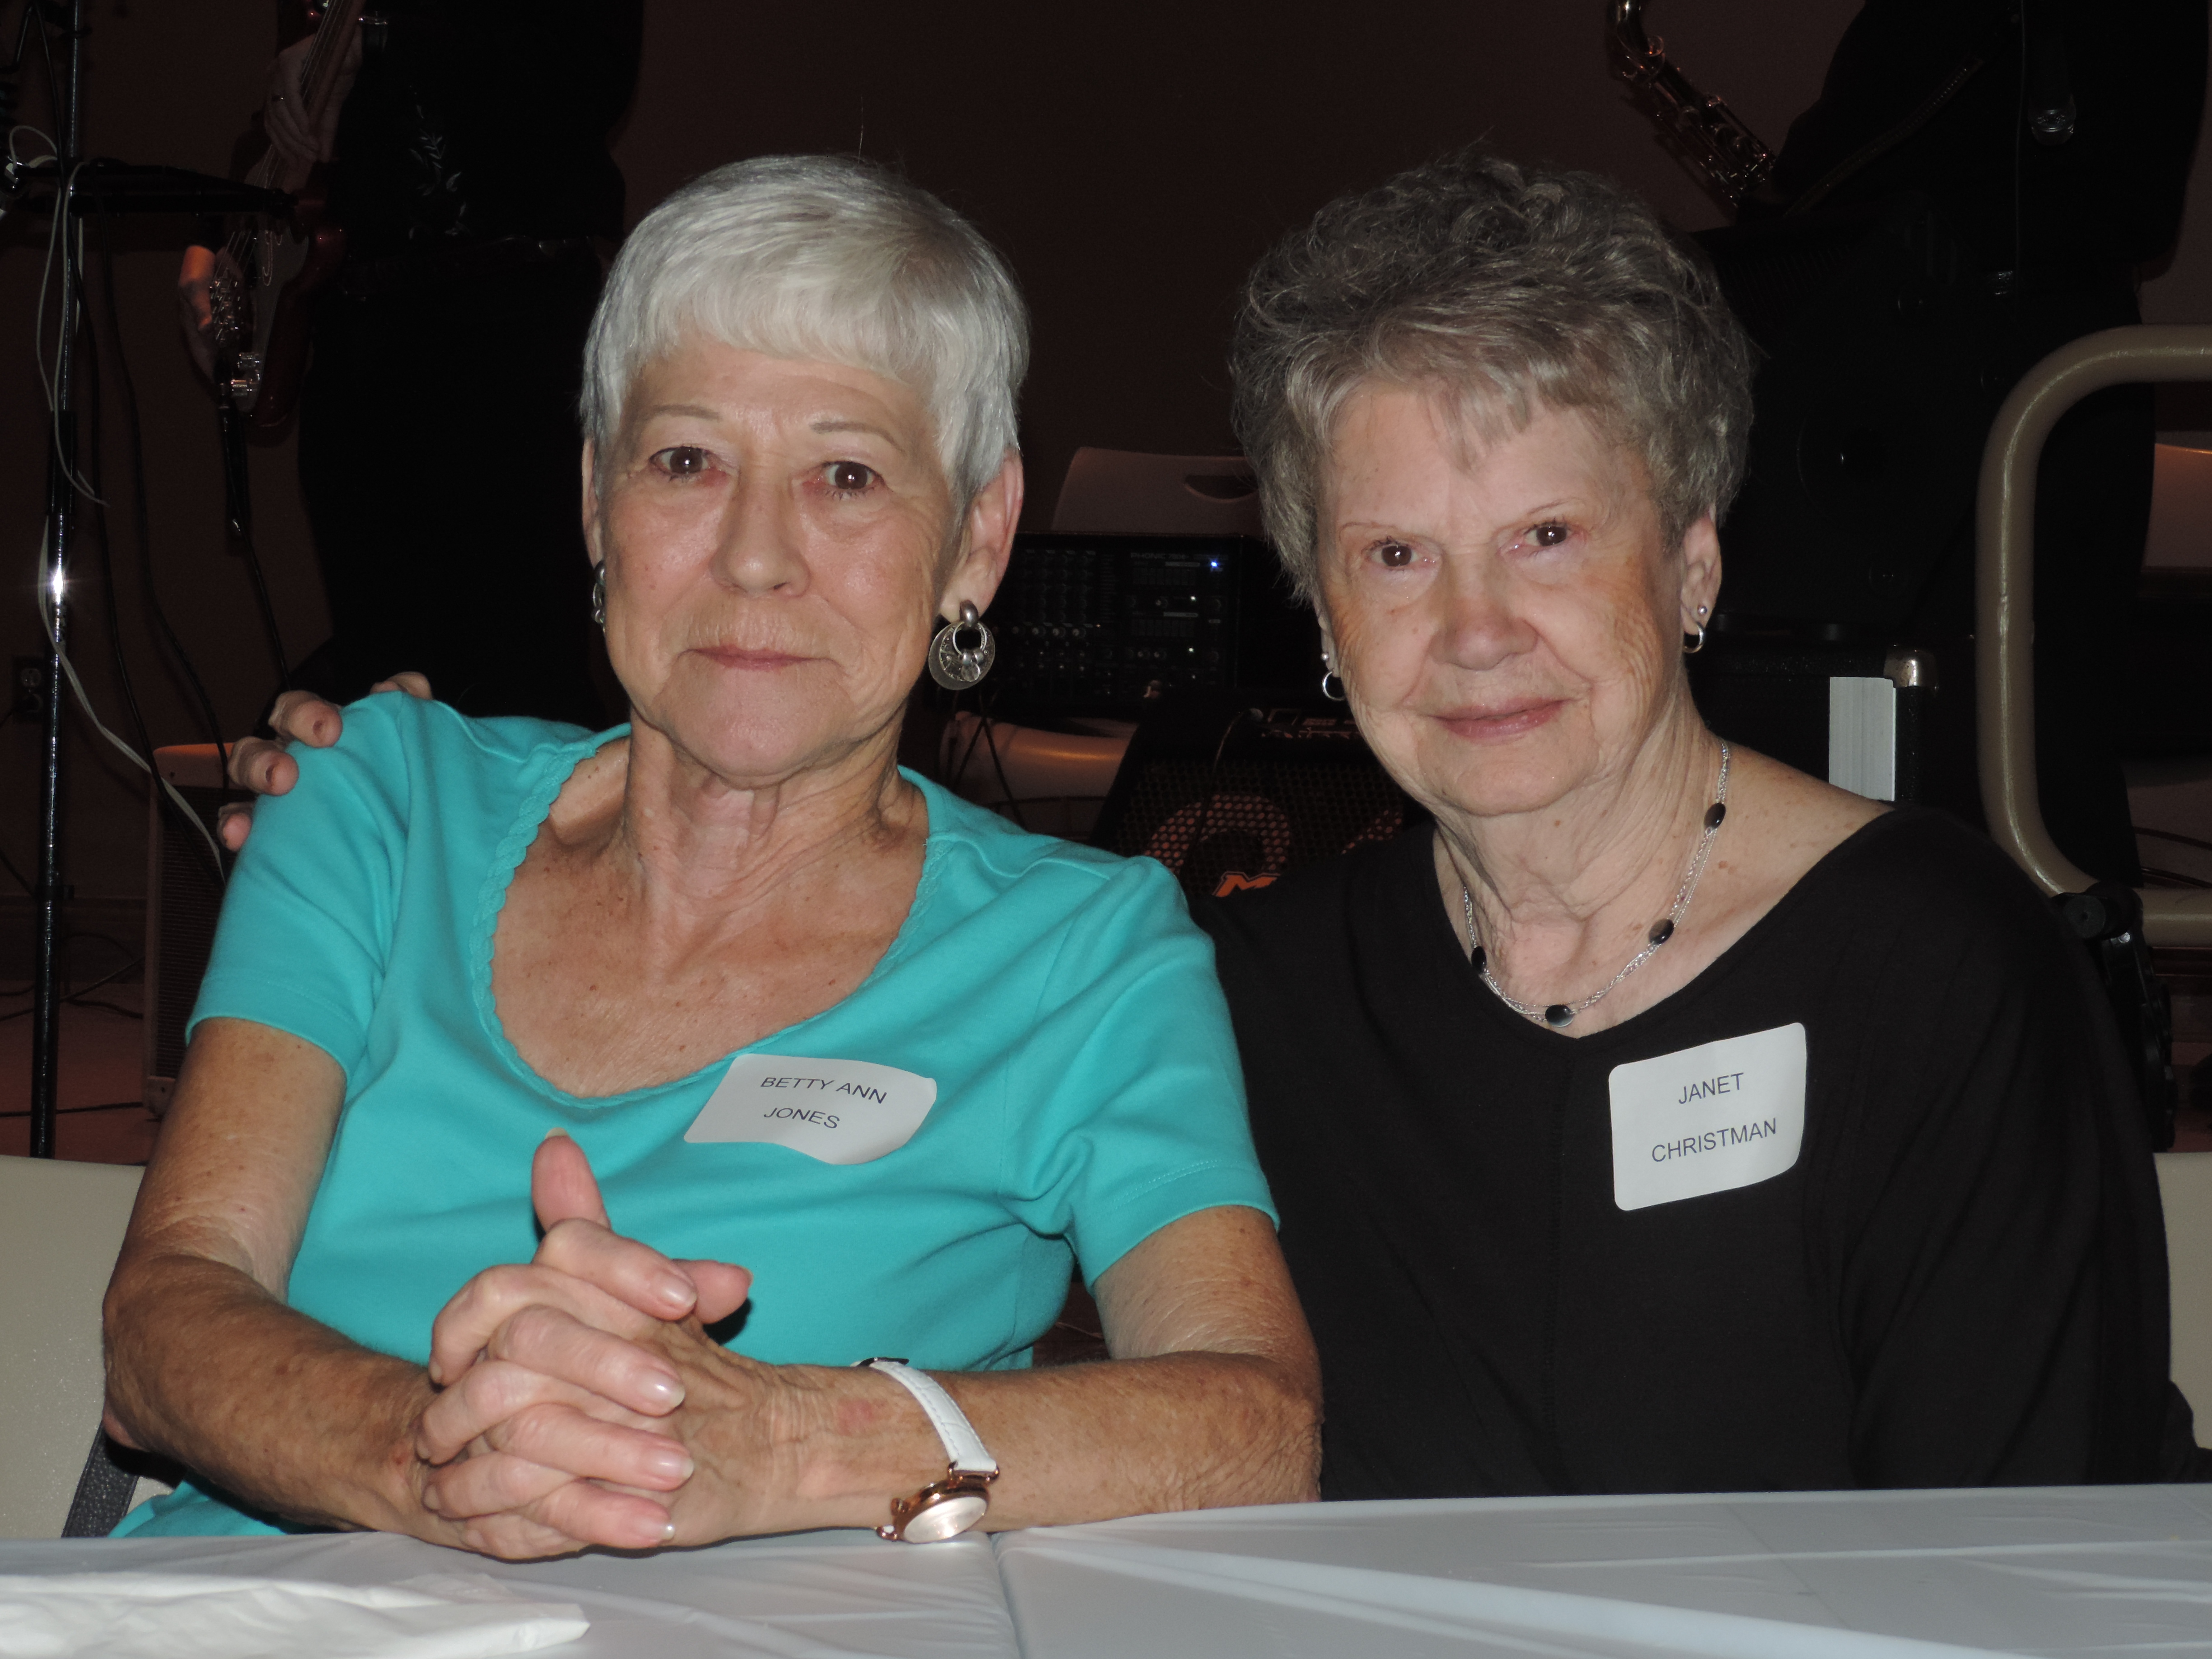 Betty Ann Jones Jan Christman